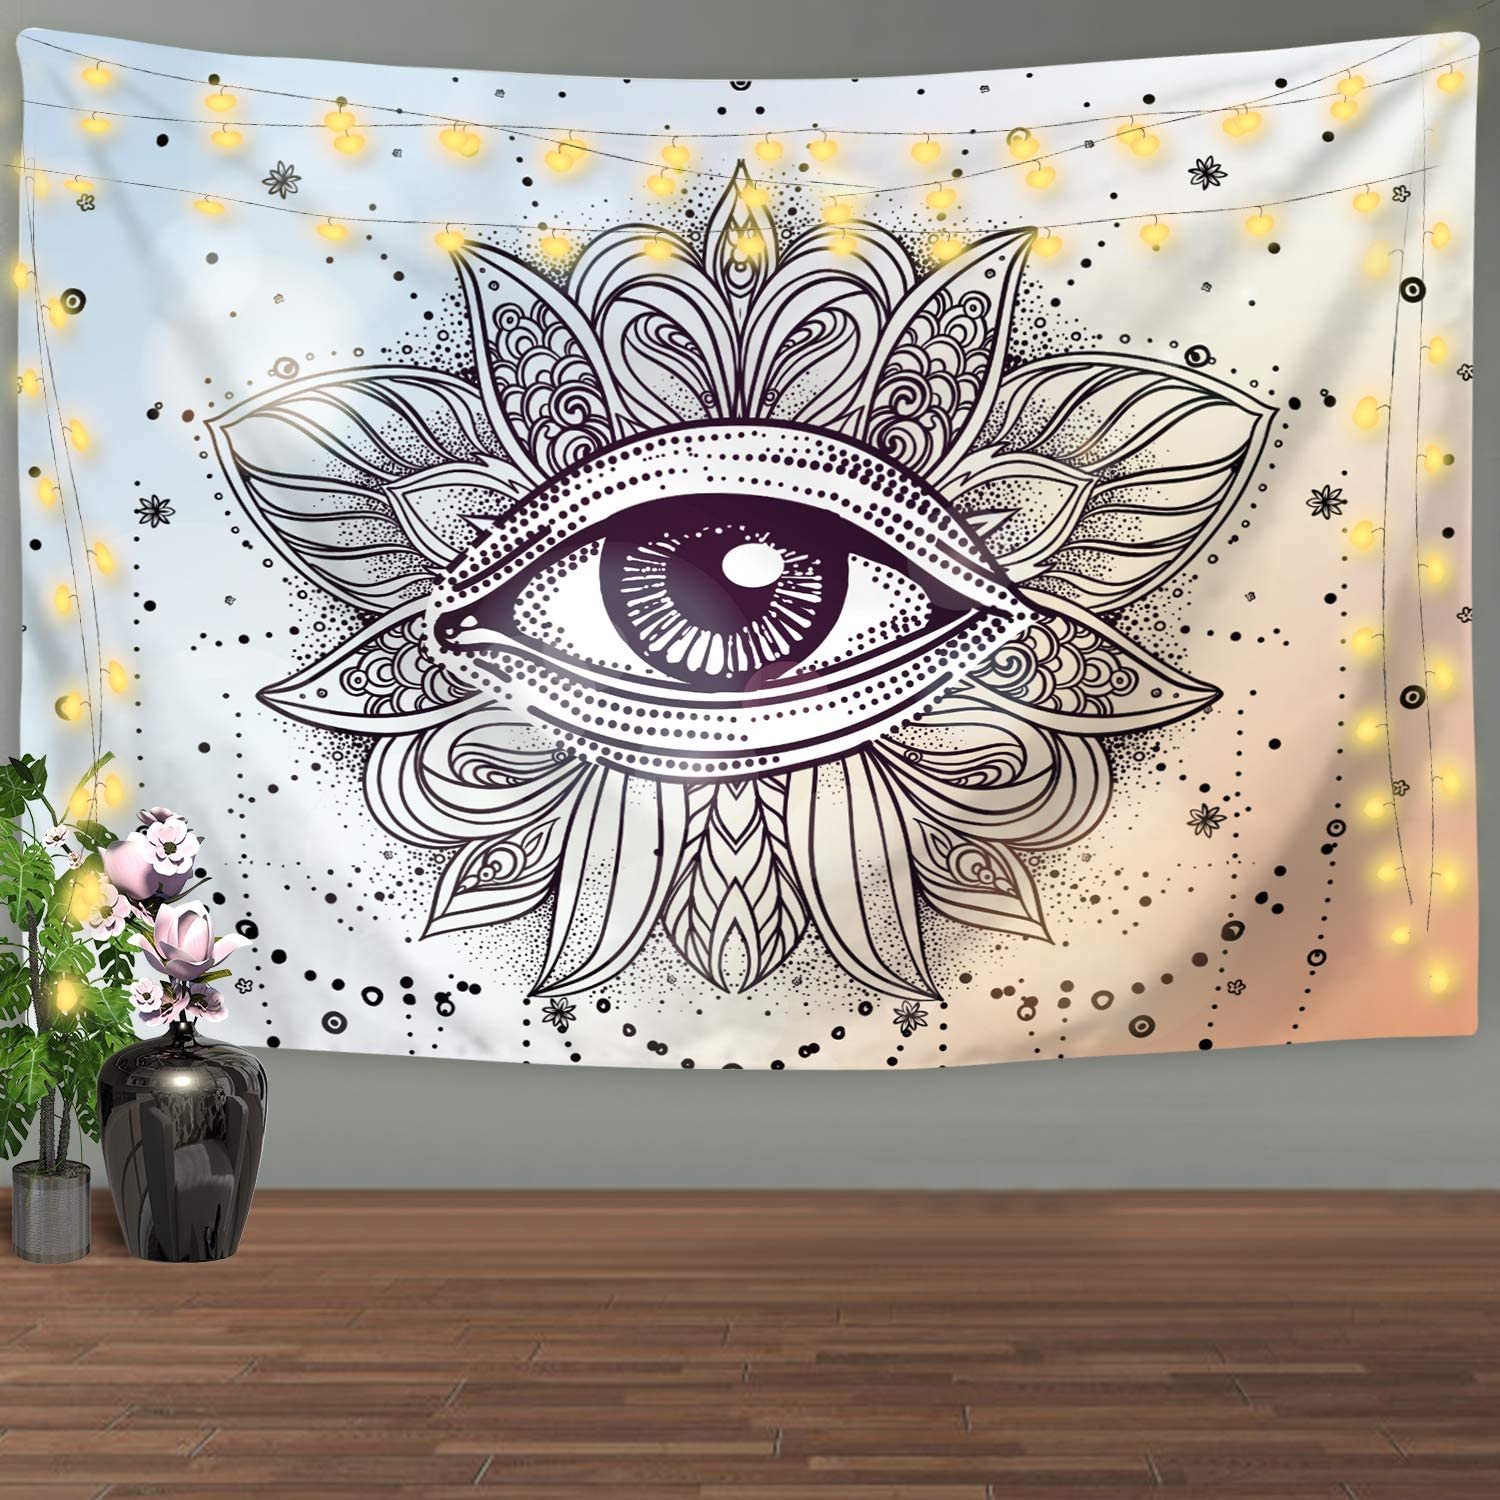 Psychedelic Eye Tapestry Wall Hanging Small to Giant Sizes Printed in the USA W.Francis American Made